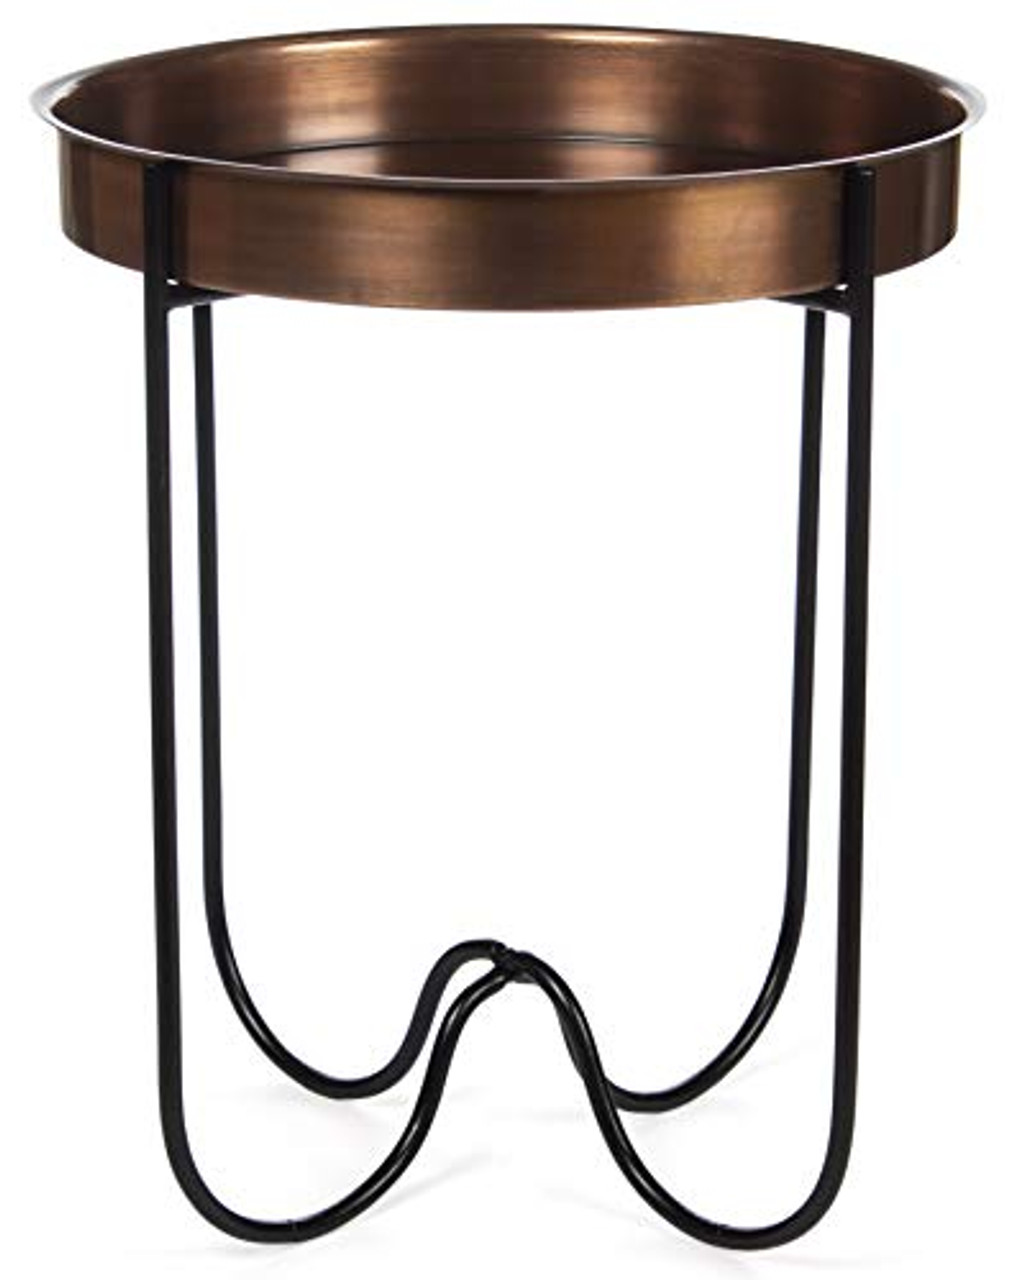 h potter indoor outdoor side patio table antique copper finish quick folding removable round metal tray